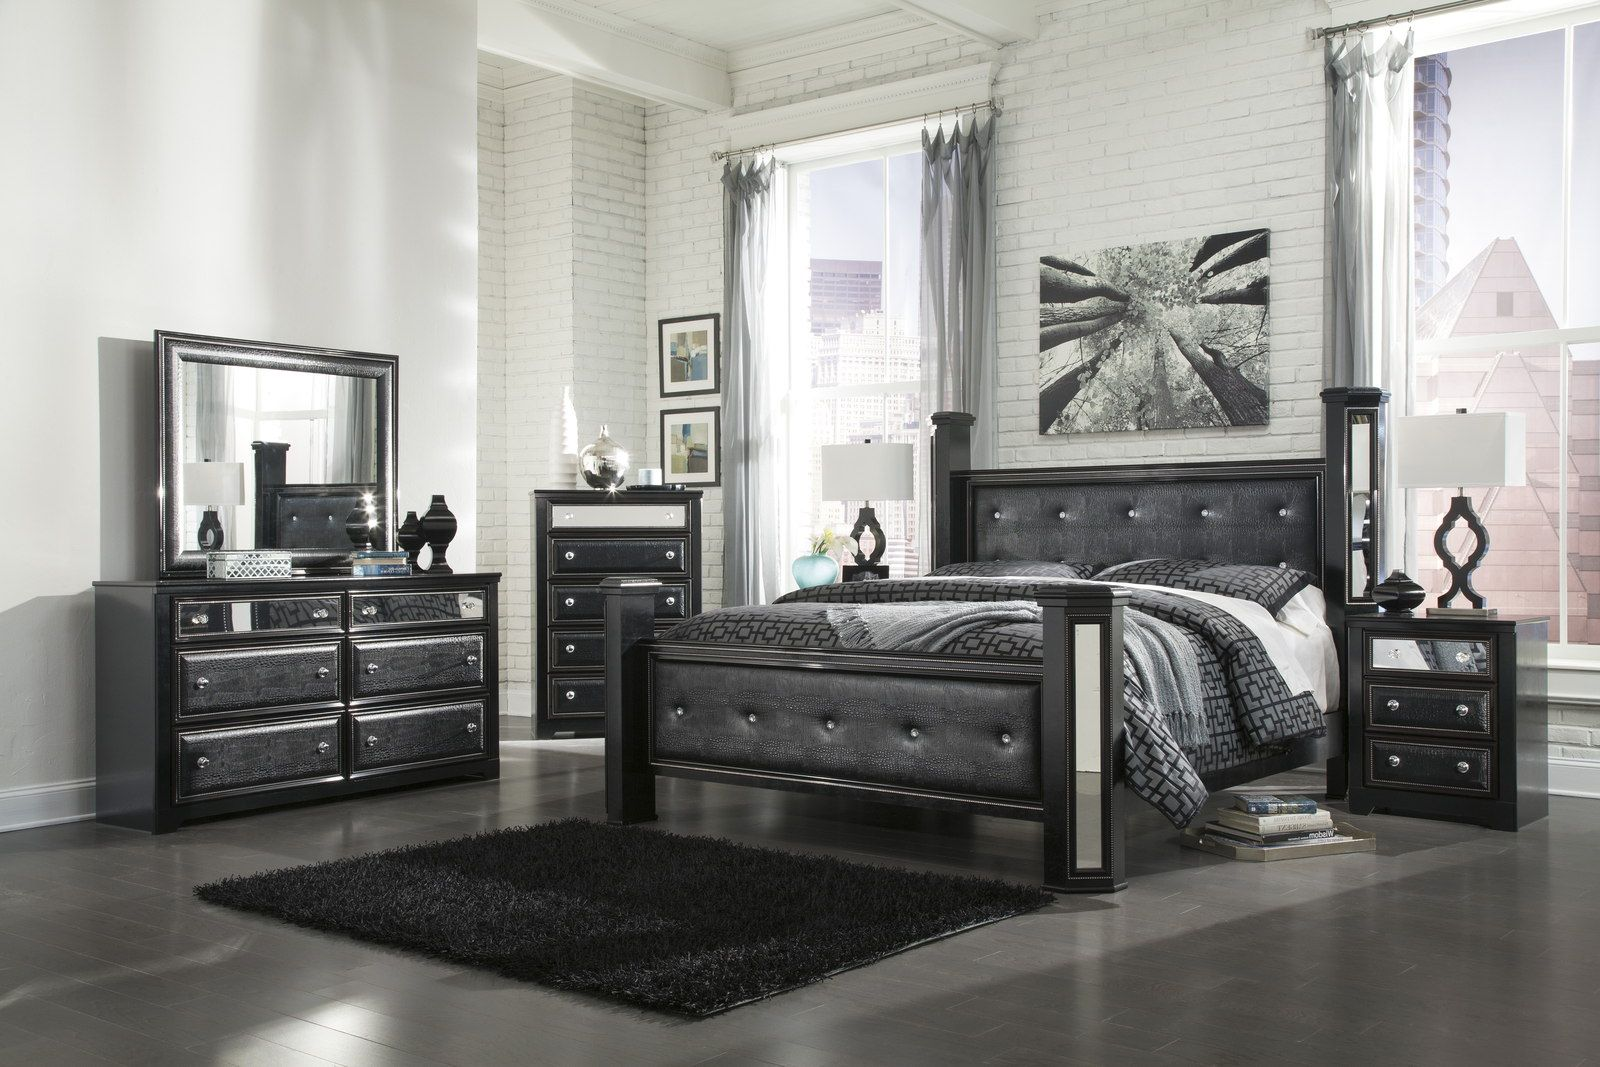 Queen black bedroom sets